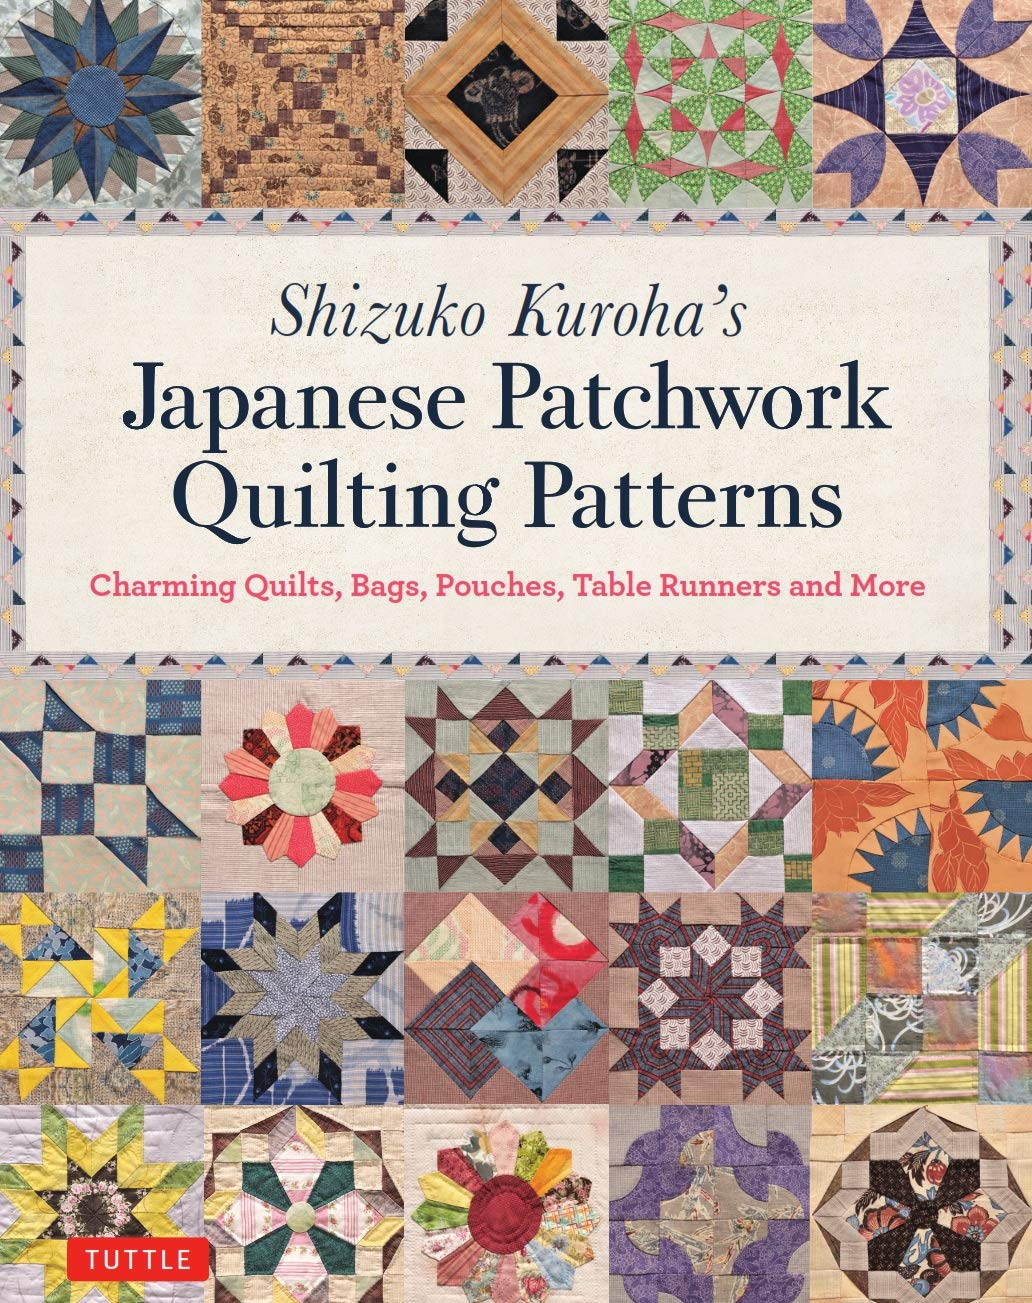 Amazon fr shizuko kurohas japanese patchwork quilting patterns charming quilts bags pouches table runners and more shizuko kuroha livres